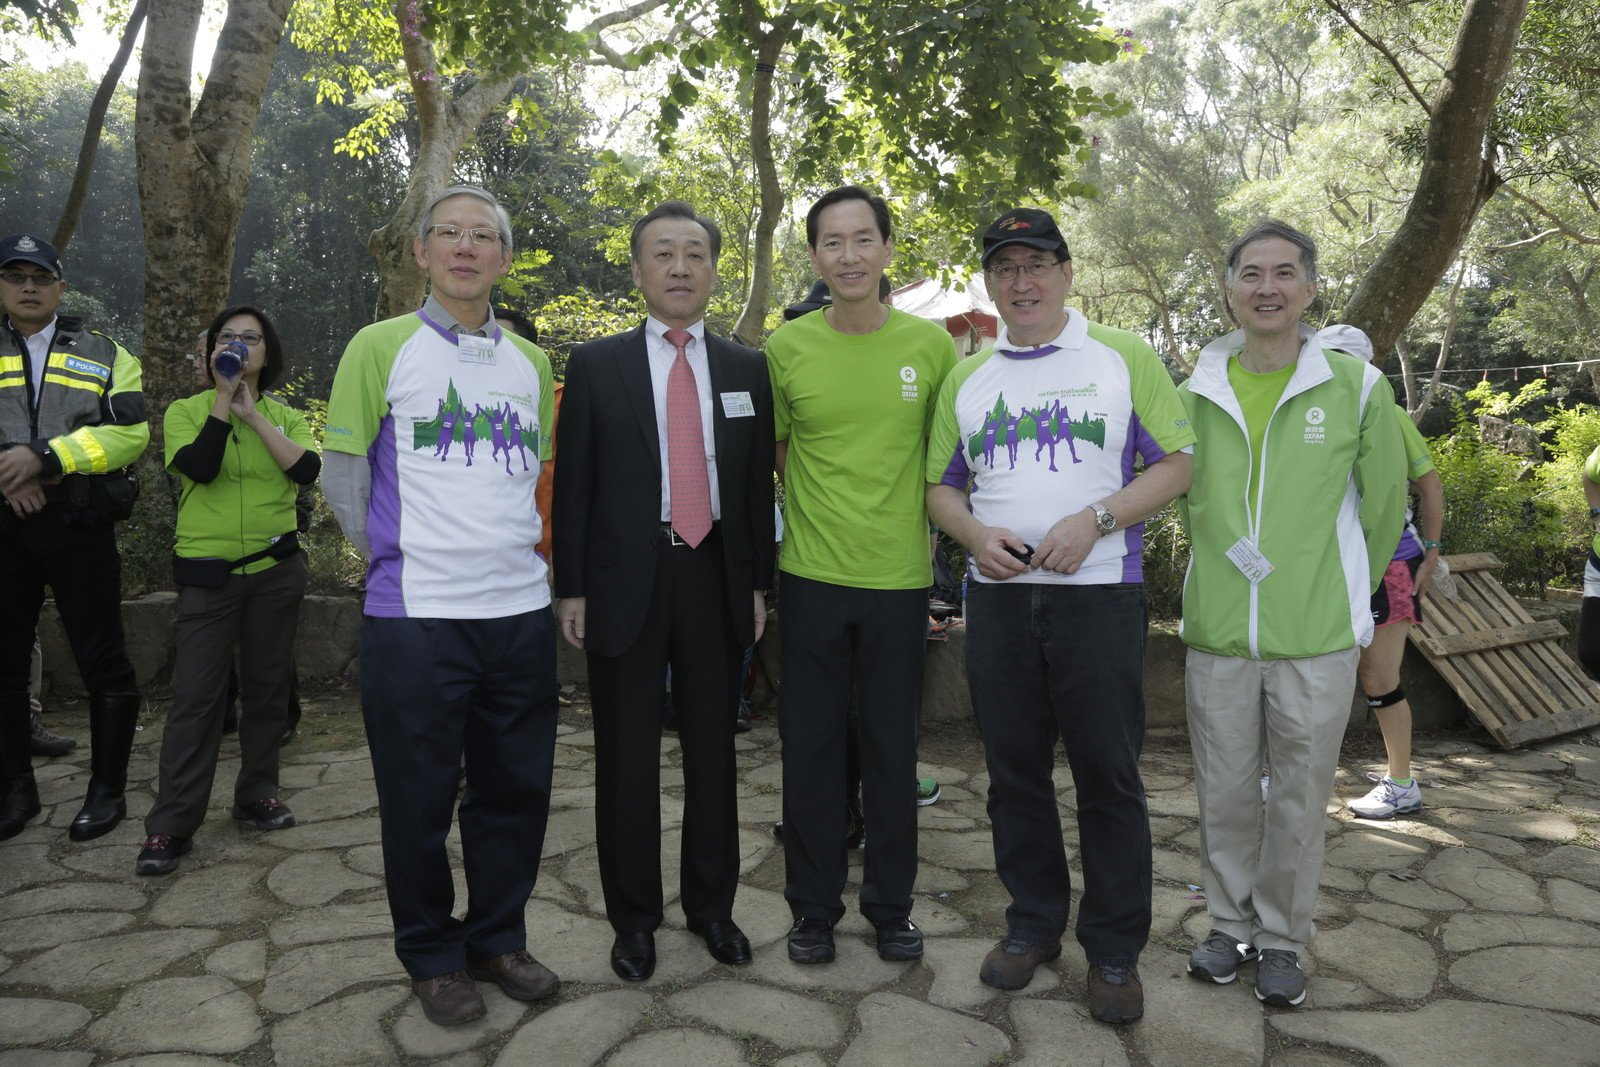 Oxfam Trailwalker Kick-Off Ceremony was held at 11am today and was officiated by Dr. Stephen Fisher, Director General, Oxfam Hong Kong (first from right), Dr York Chow Yat-Ngok, Chairperson, Equal Opportunities Commission (second from right); Mr. Bernard Chan, Chairman, Oxfam Trailwalker Advisory Committee (third from right) and Dr. Lo Chi Kin, J.P., Chair, Oxfam Hong Kong Council (first from left).